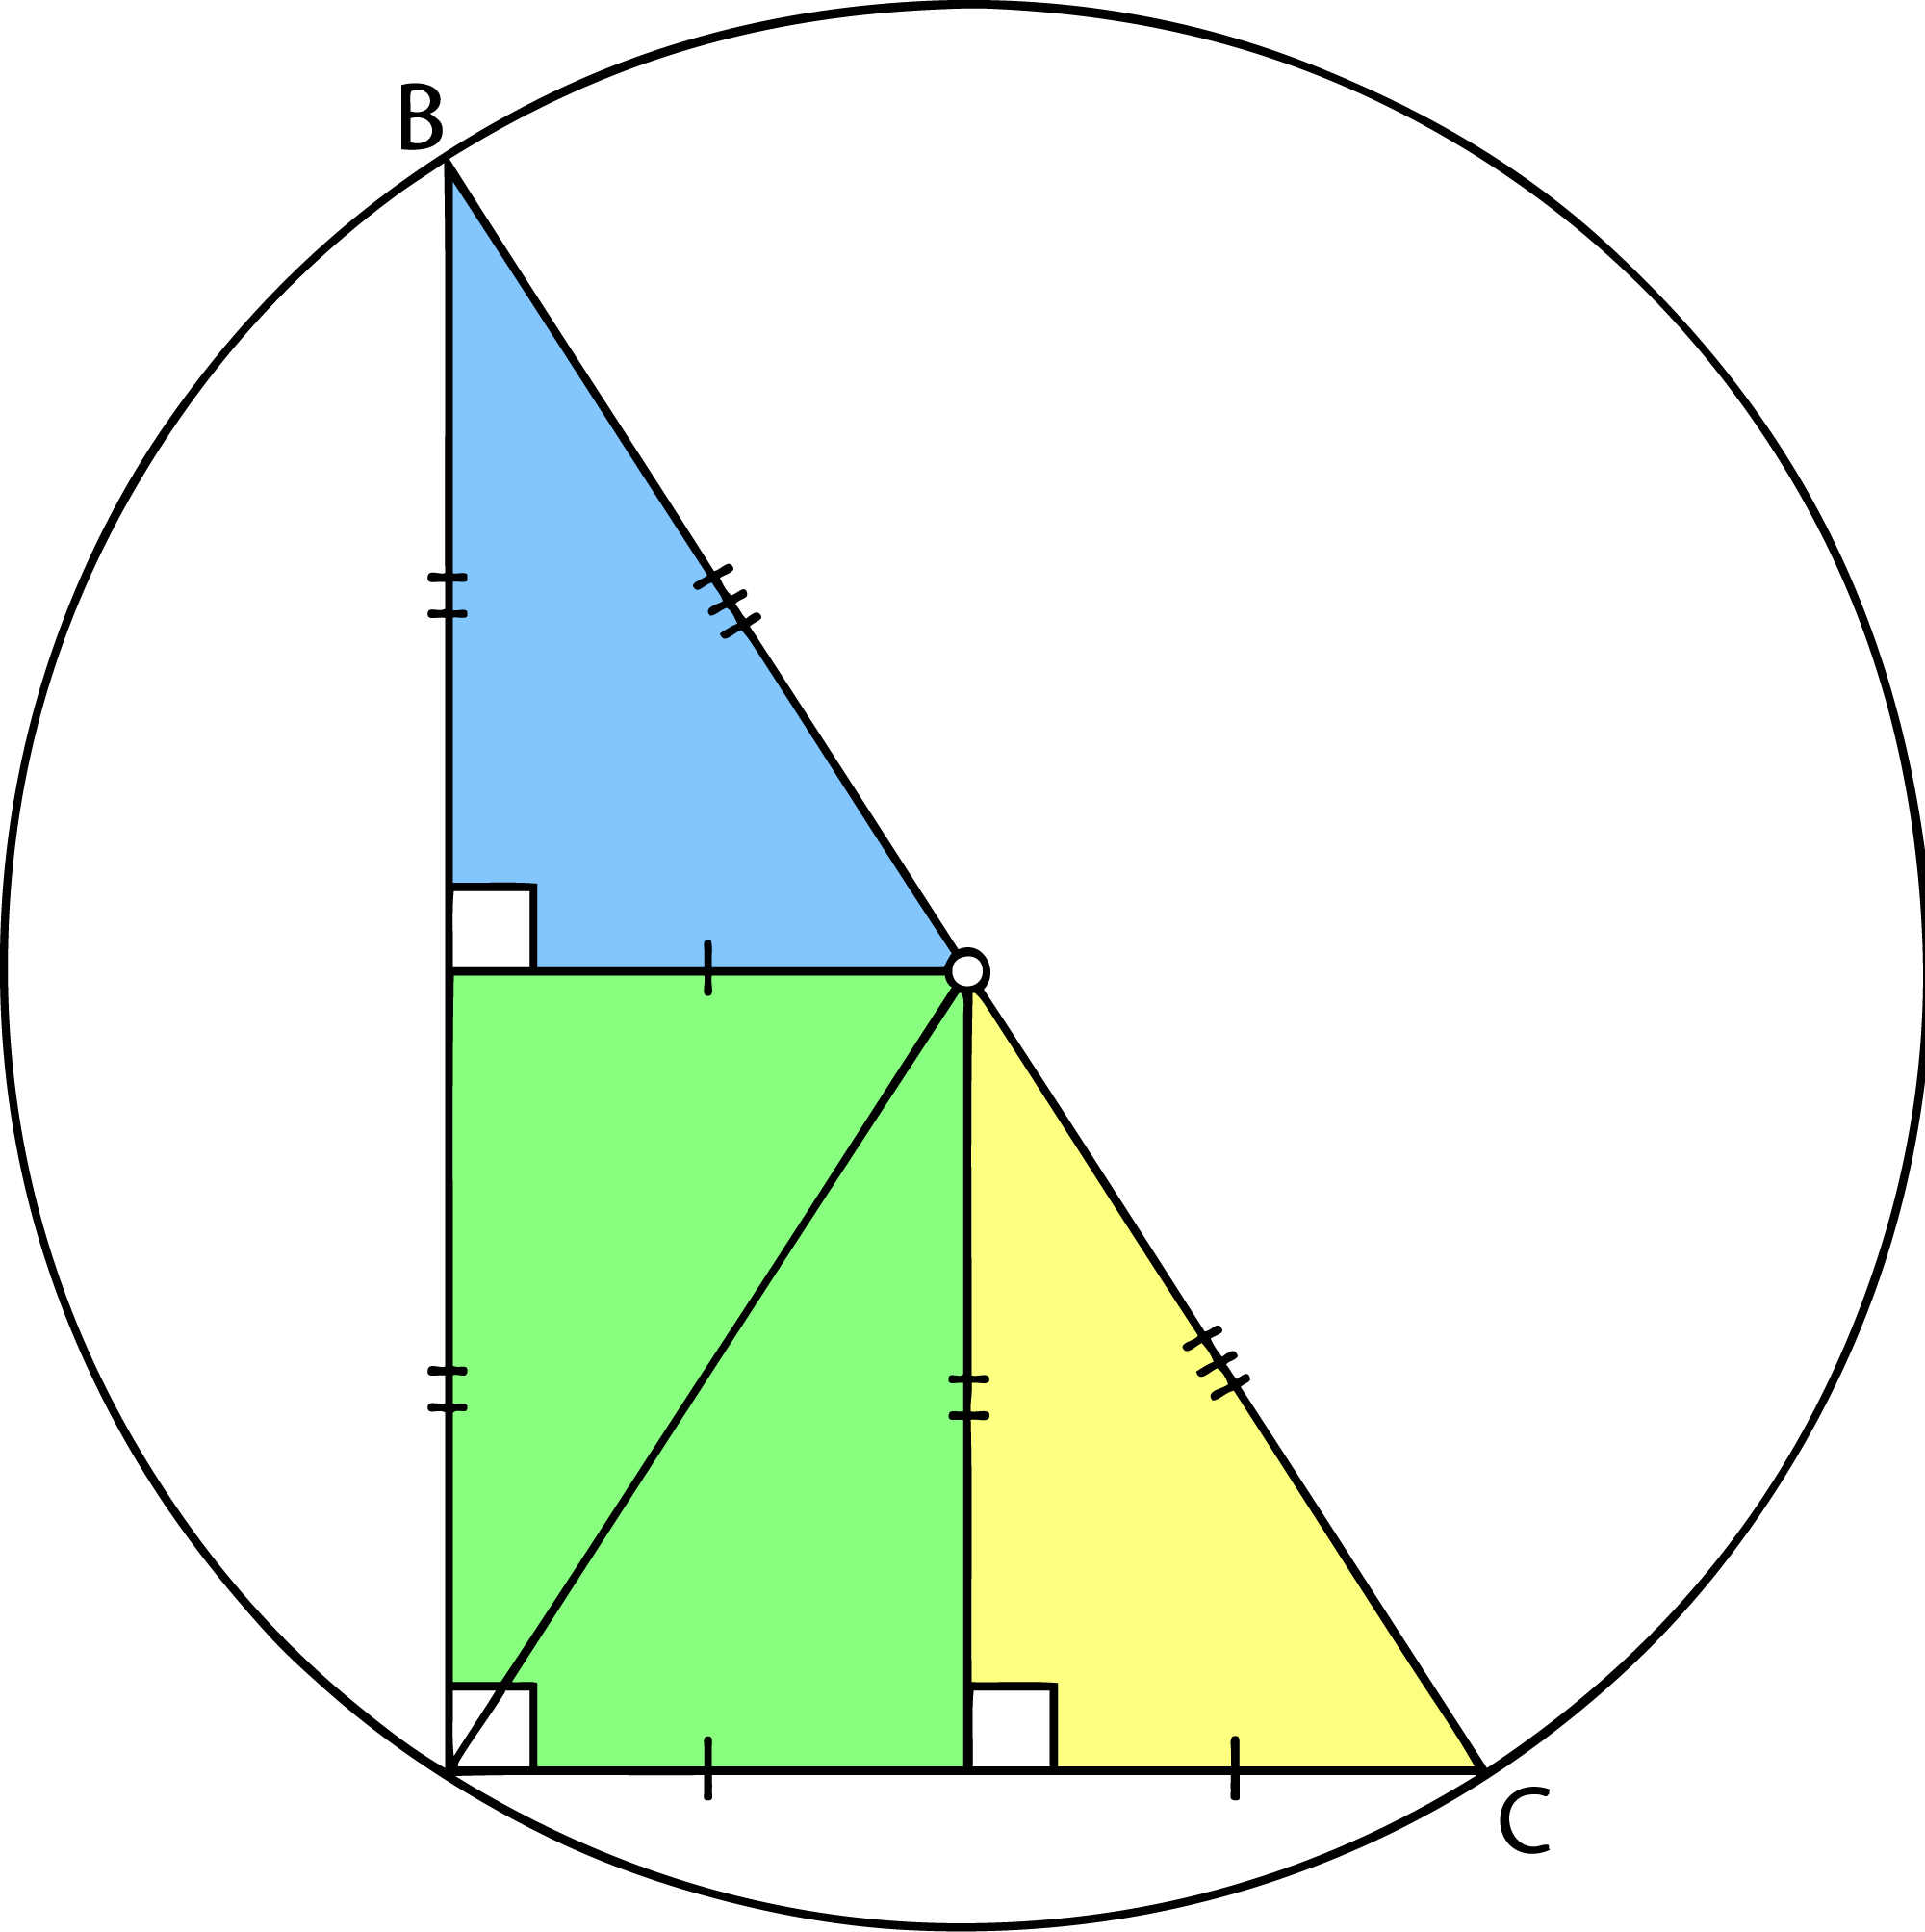 Perpendicular Bisector In Nature A right angle triangle the